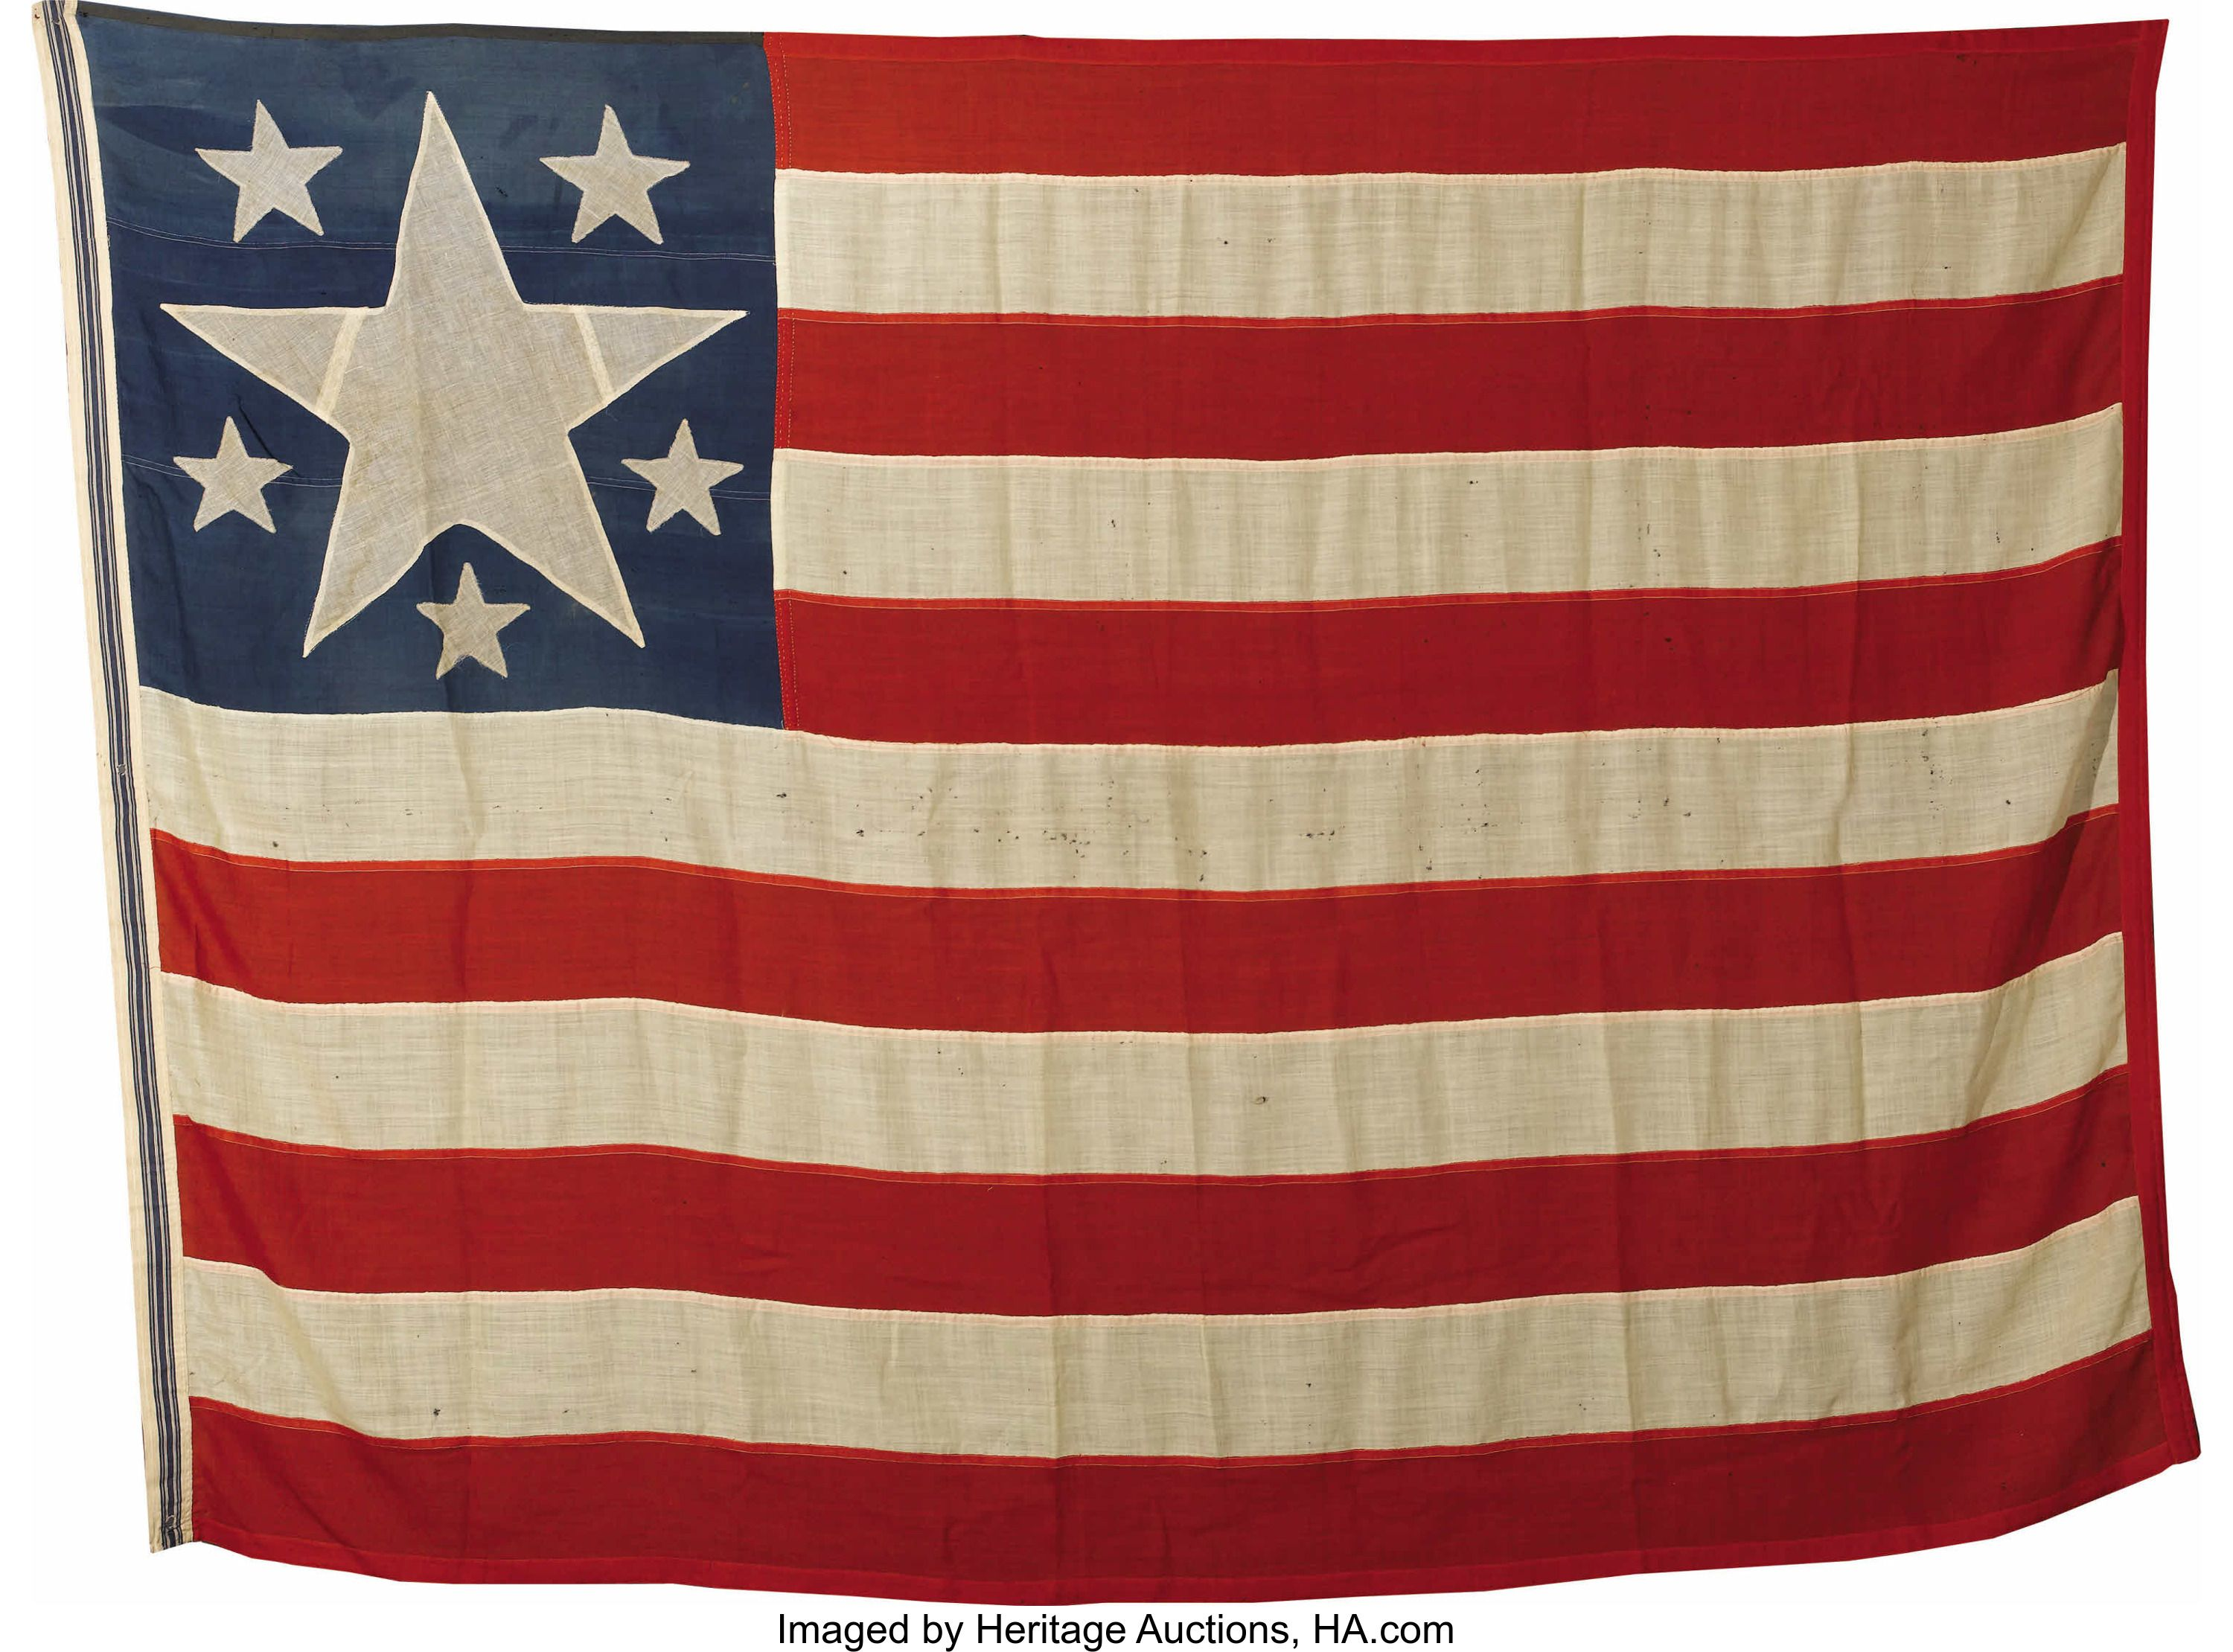 A Very Rare Confederate Secession Flag 1861 This Is An Extremely Rare Confederate Secession Flag One Of Only Two Kno Civil War Art Civil War Flags War Flag